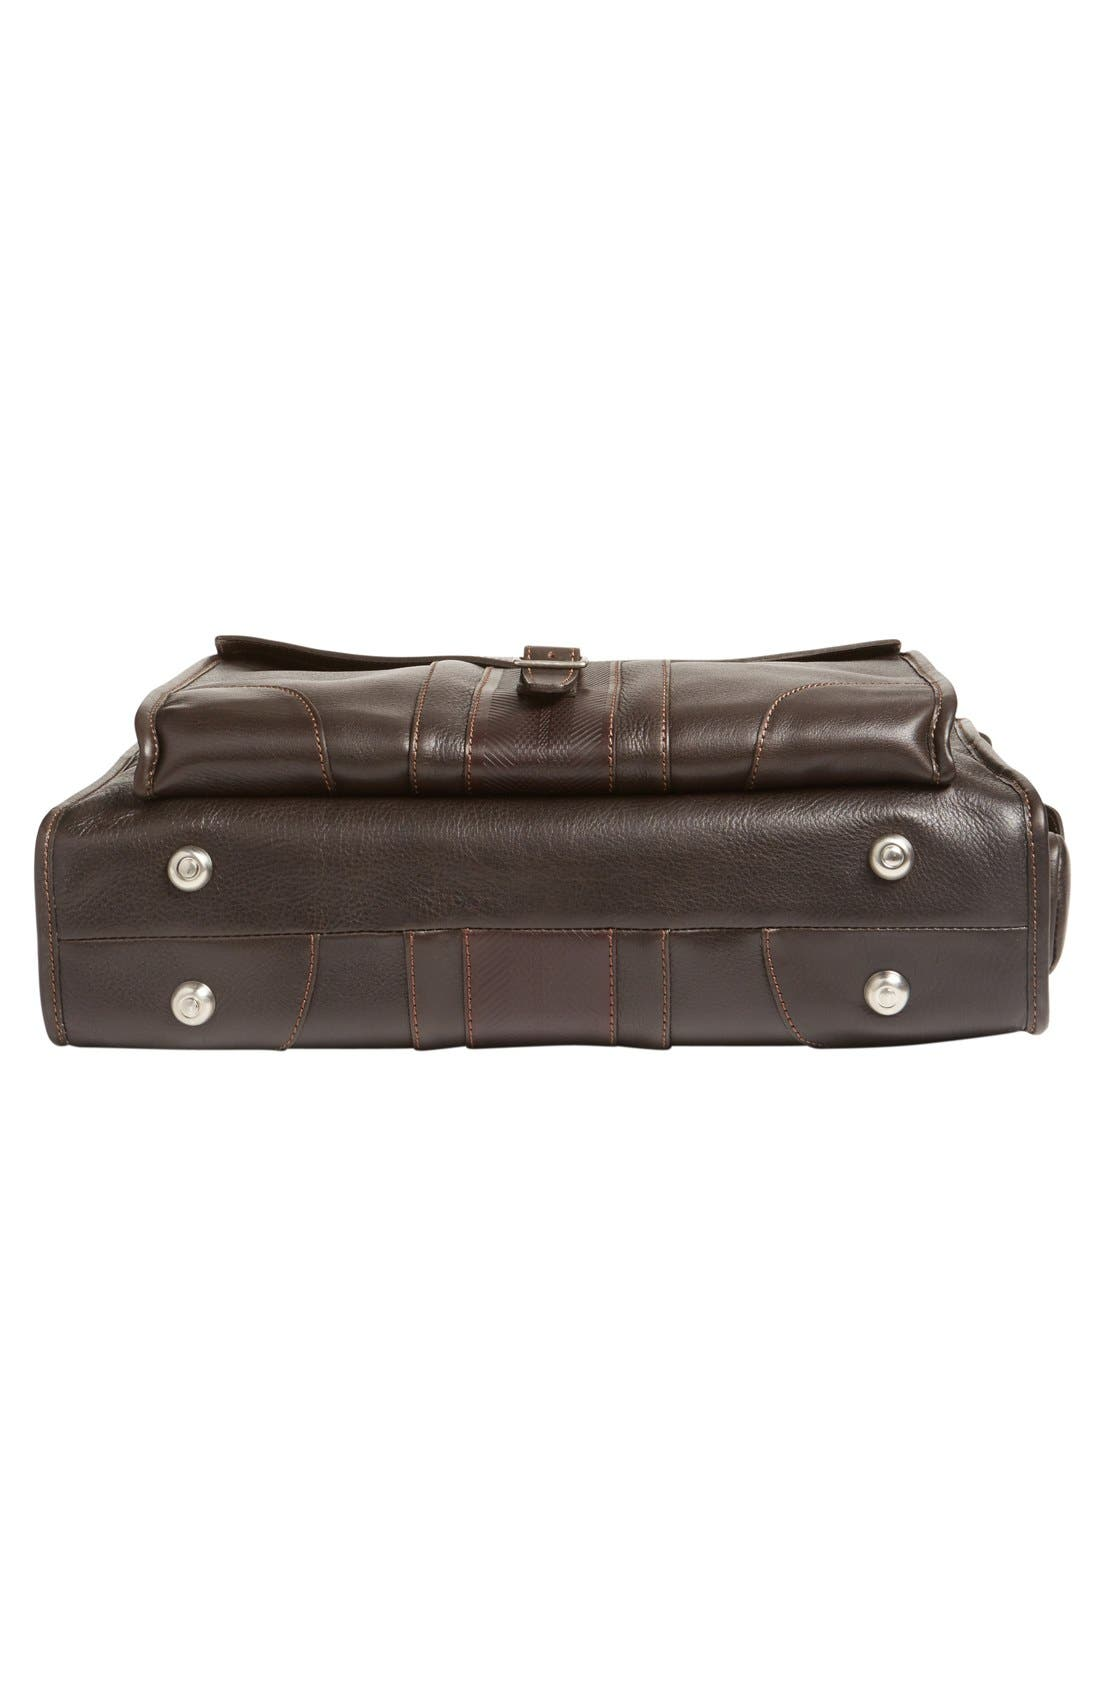 'Rudyard - Martingale' Briefcase,                             Alternate thumbnail 6, color,                             205